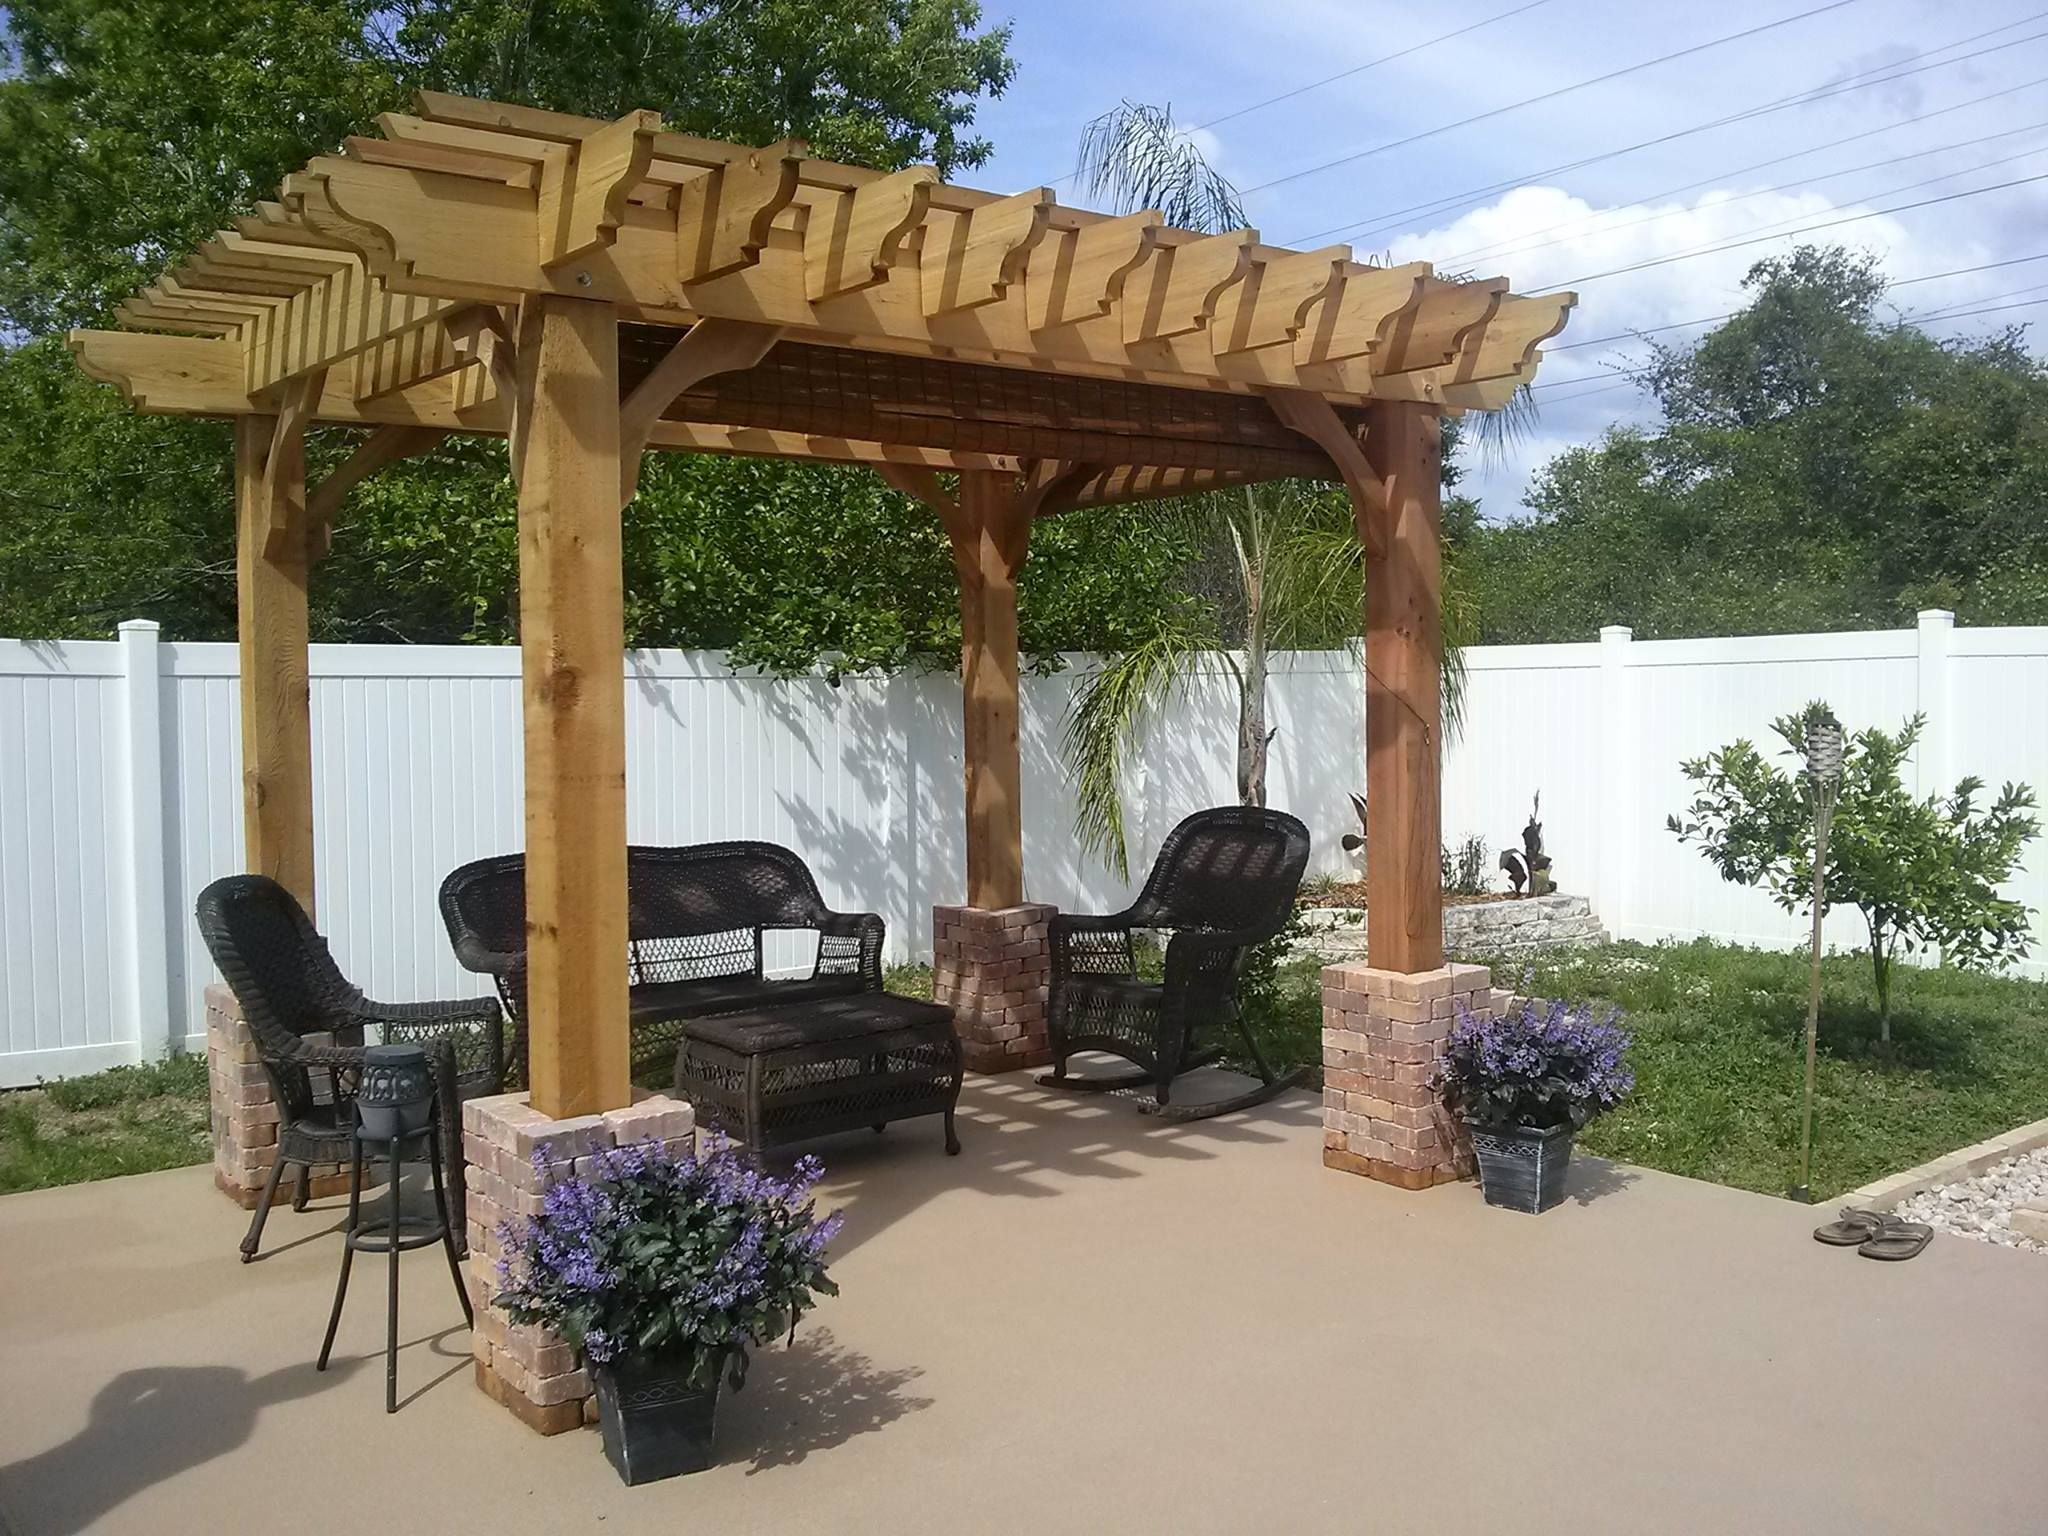 Groovy Protect And Patio Cover For Enhanced Outdoor Living With Interior Design Ideas Philsoteloinfo